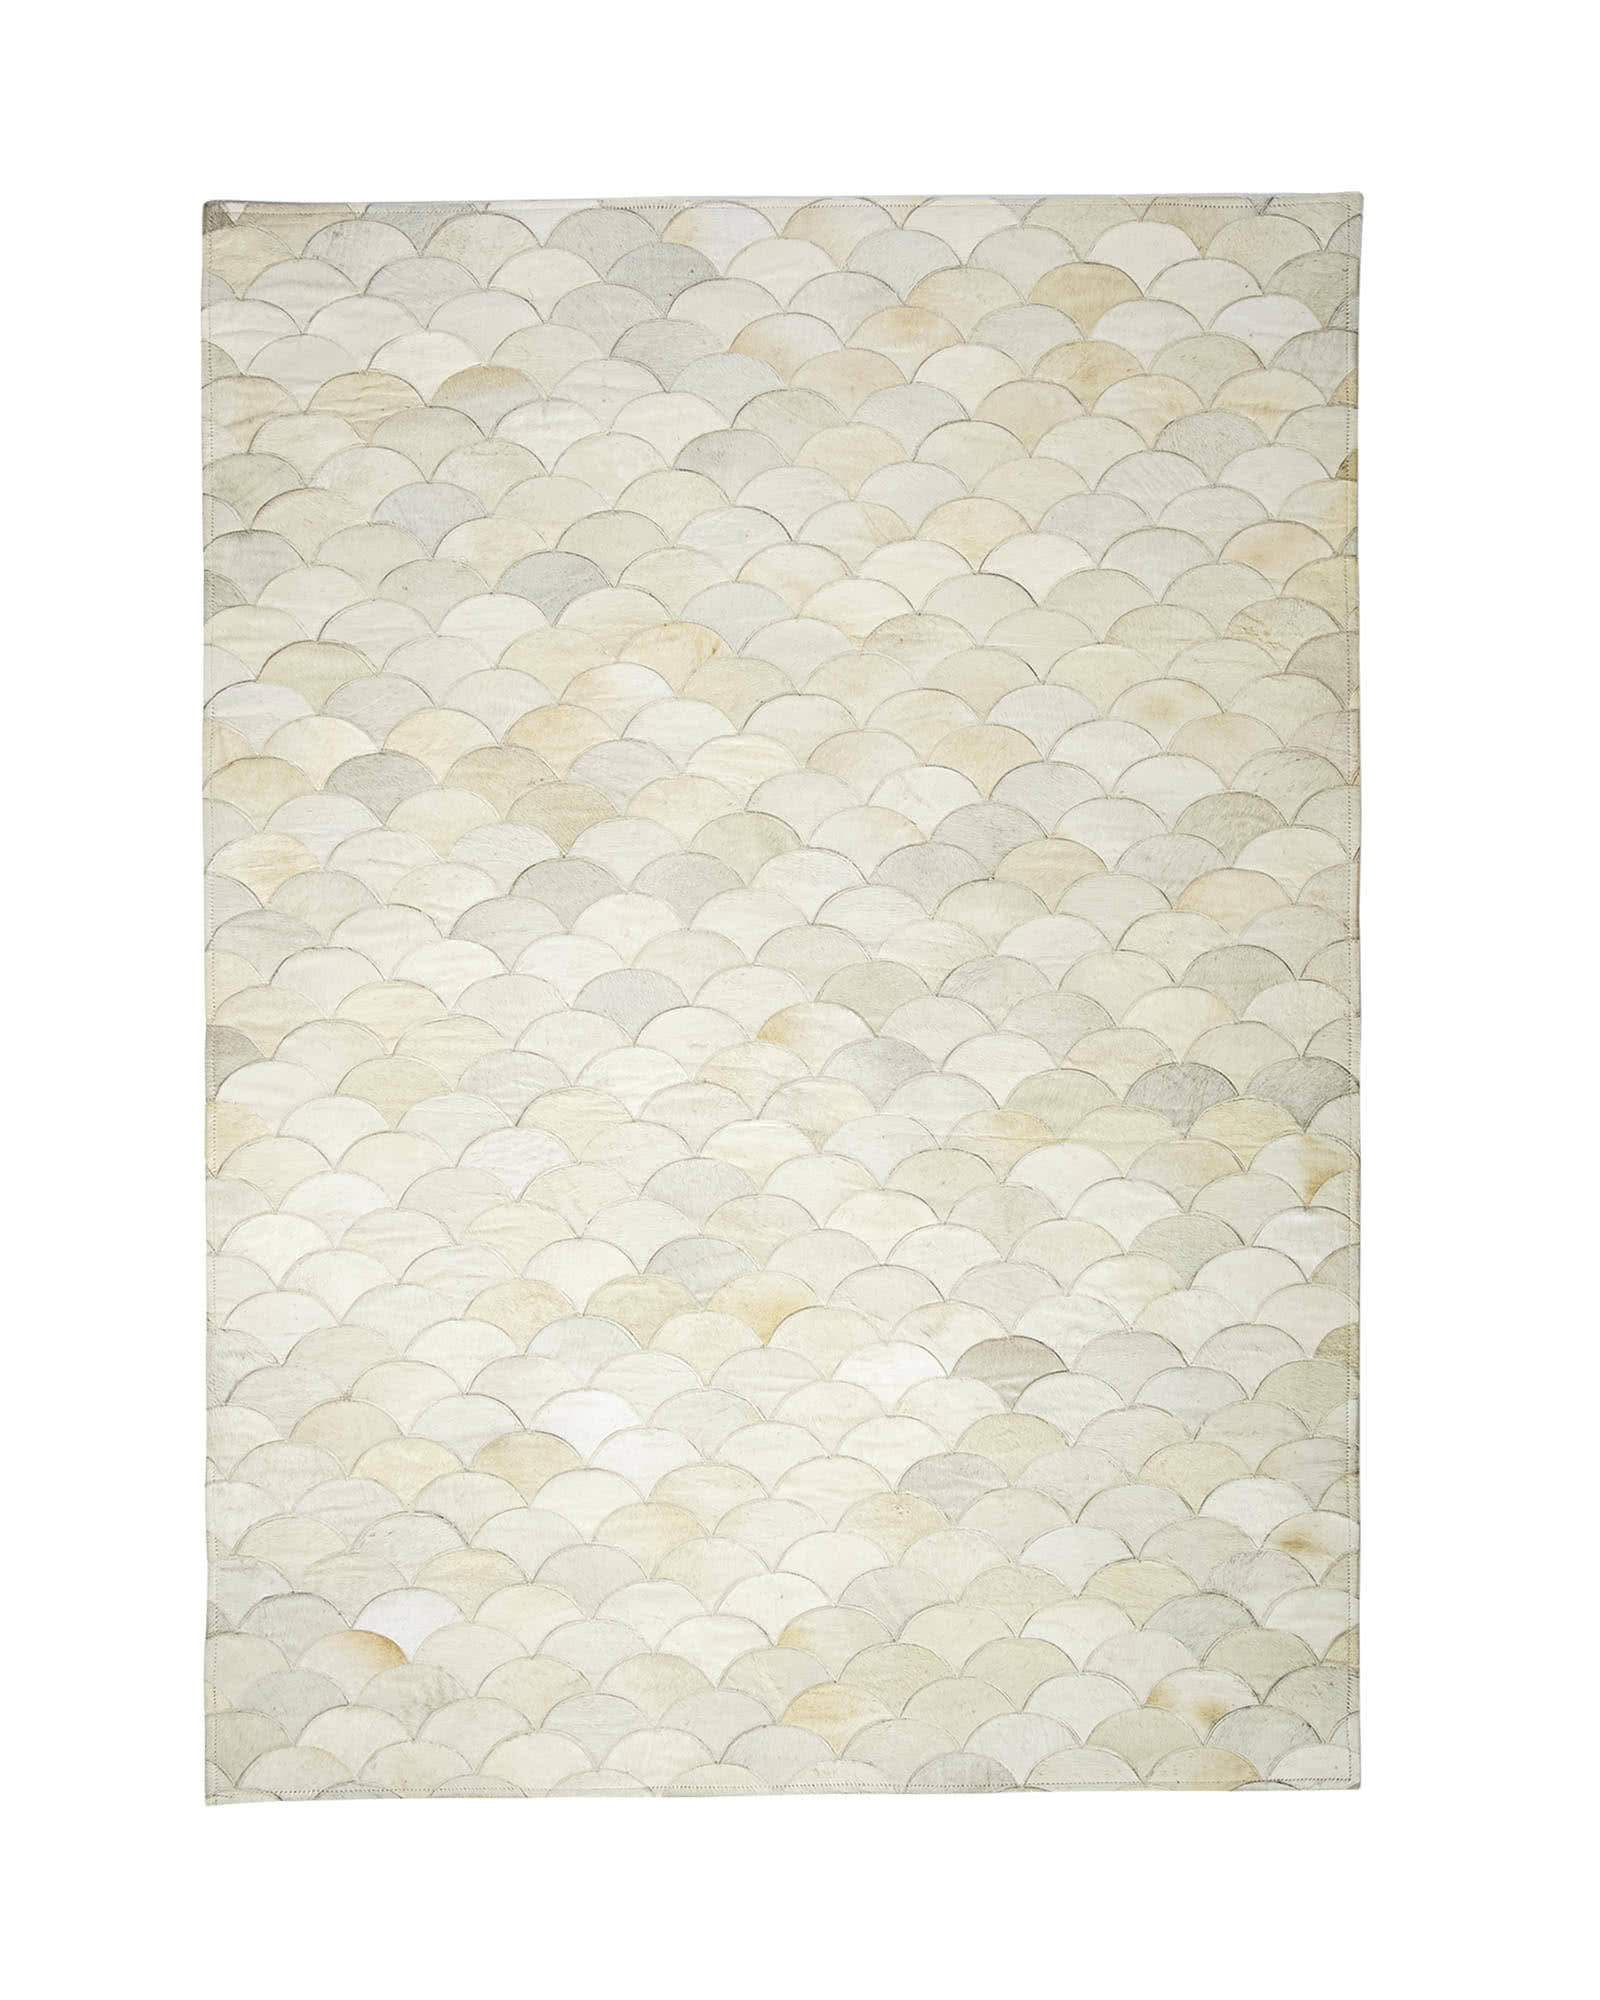 Scalloped Hide Rug,